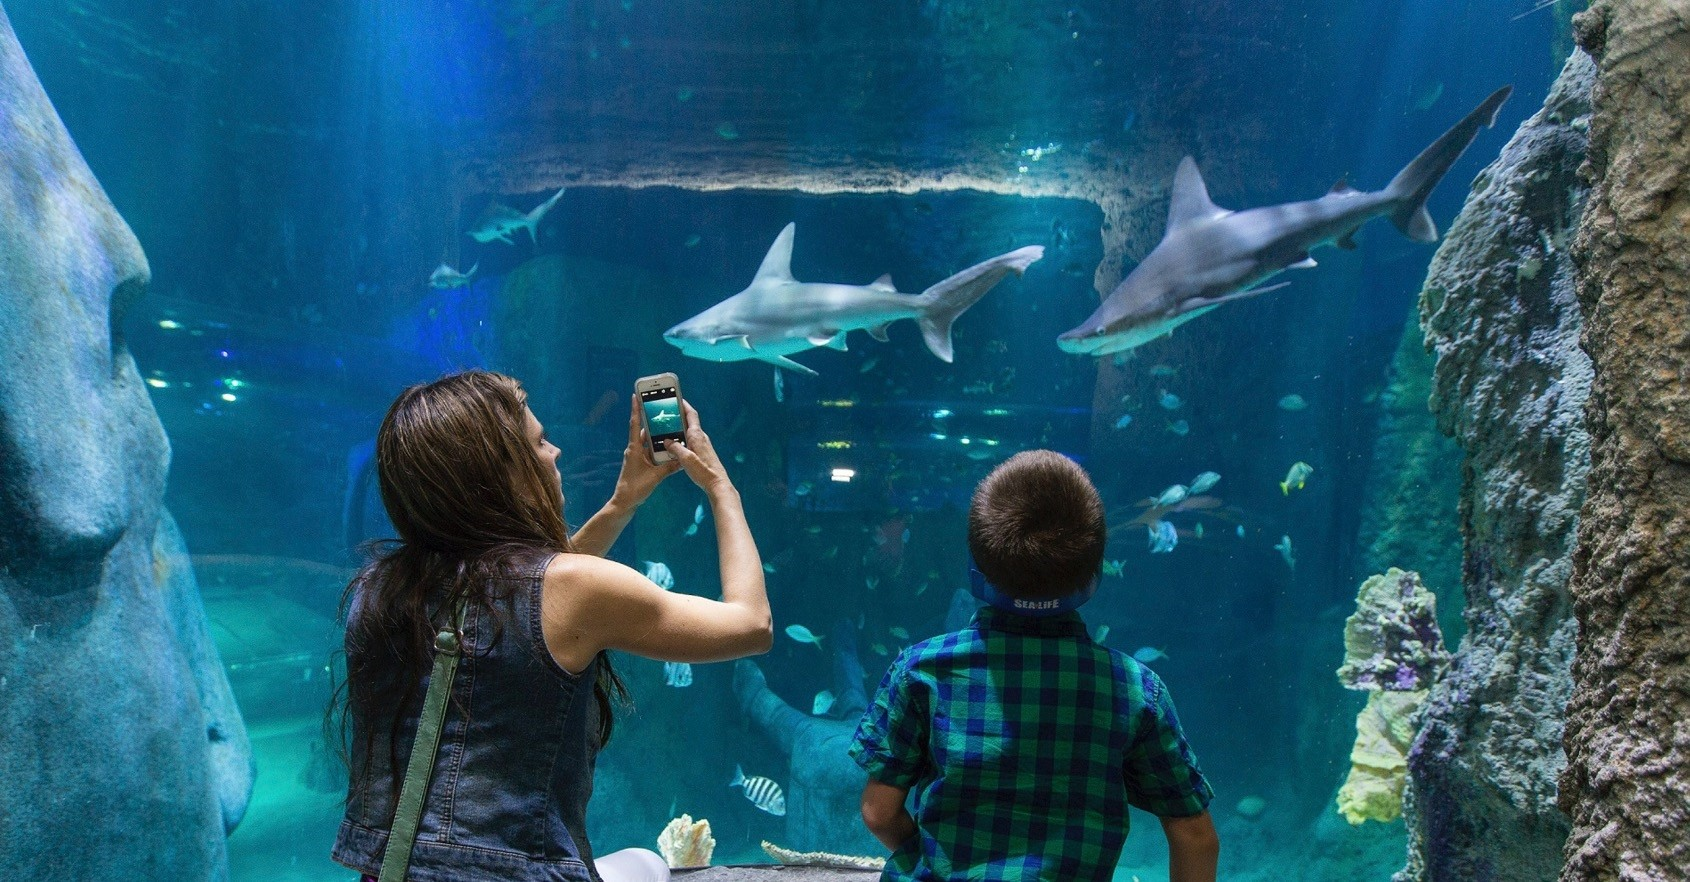 SEA LIFE boasts the largest shark family in Europe along with more than 15,000 other sea creatures.